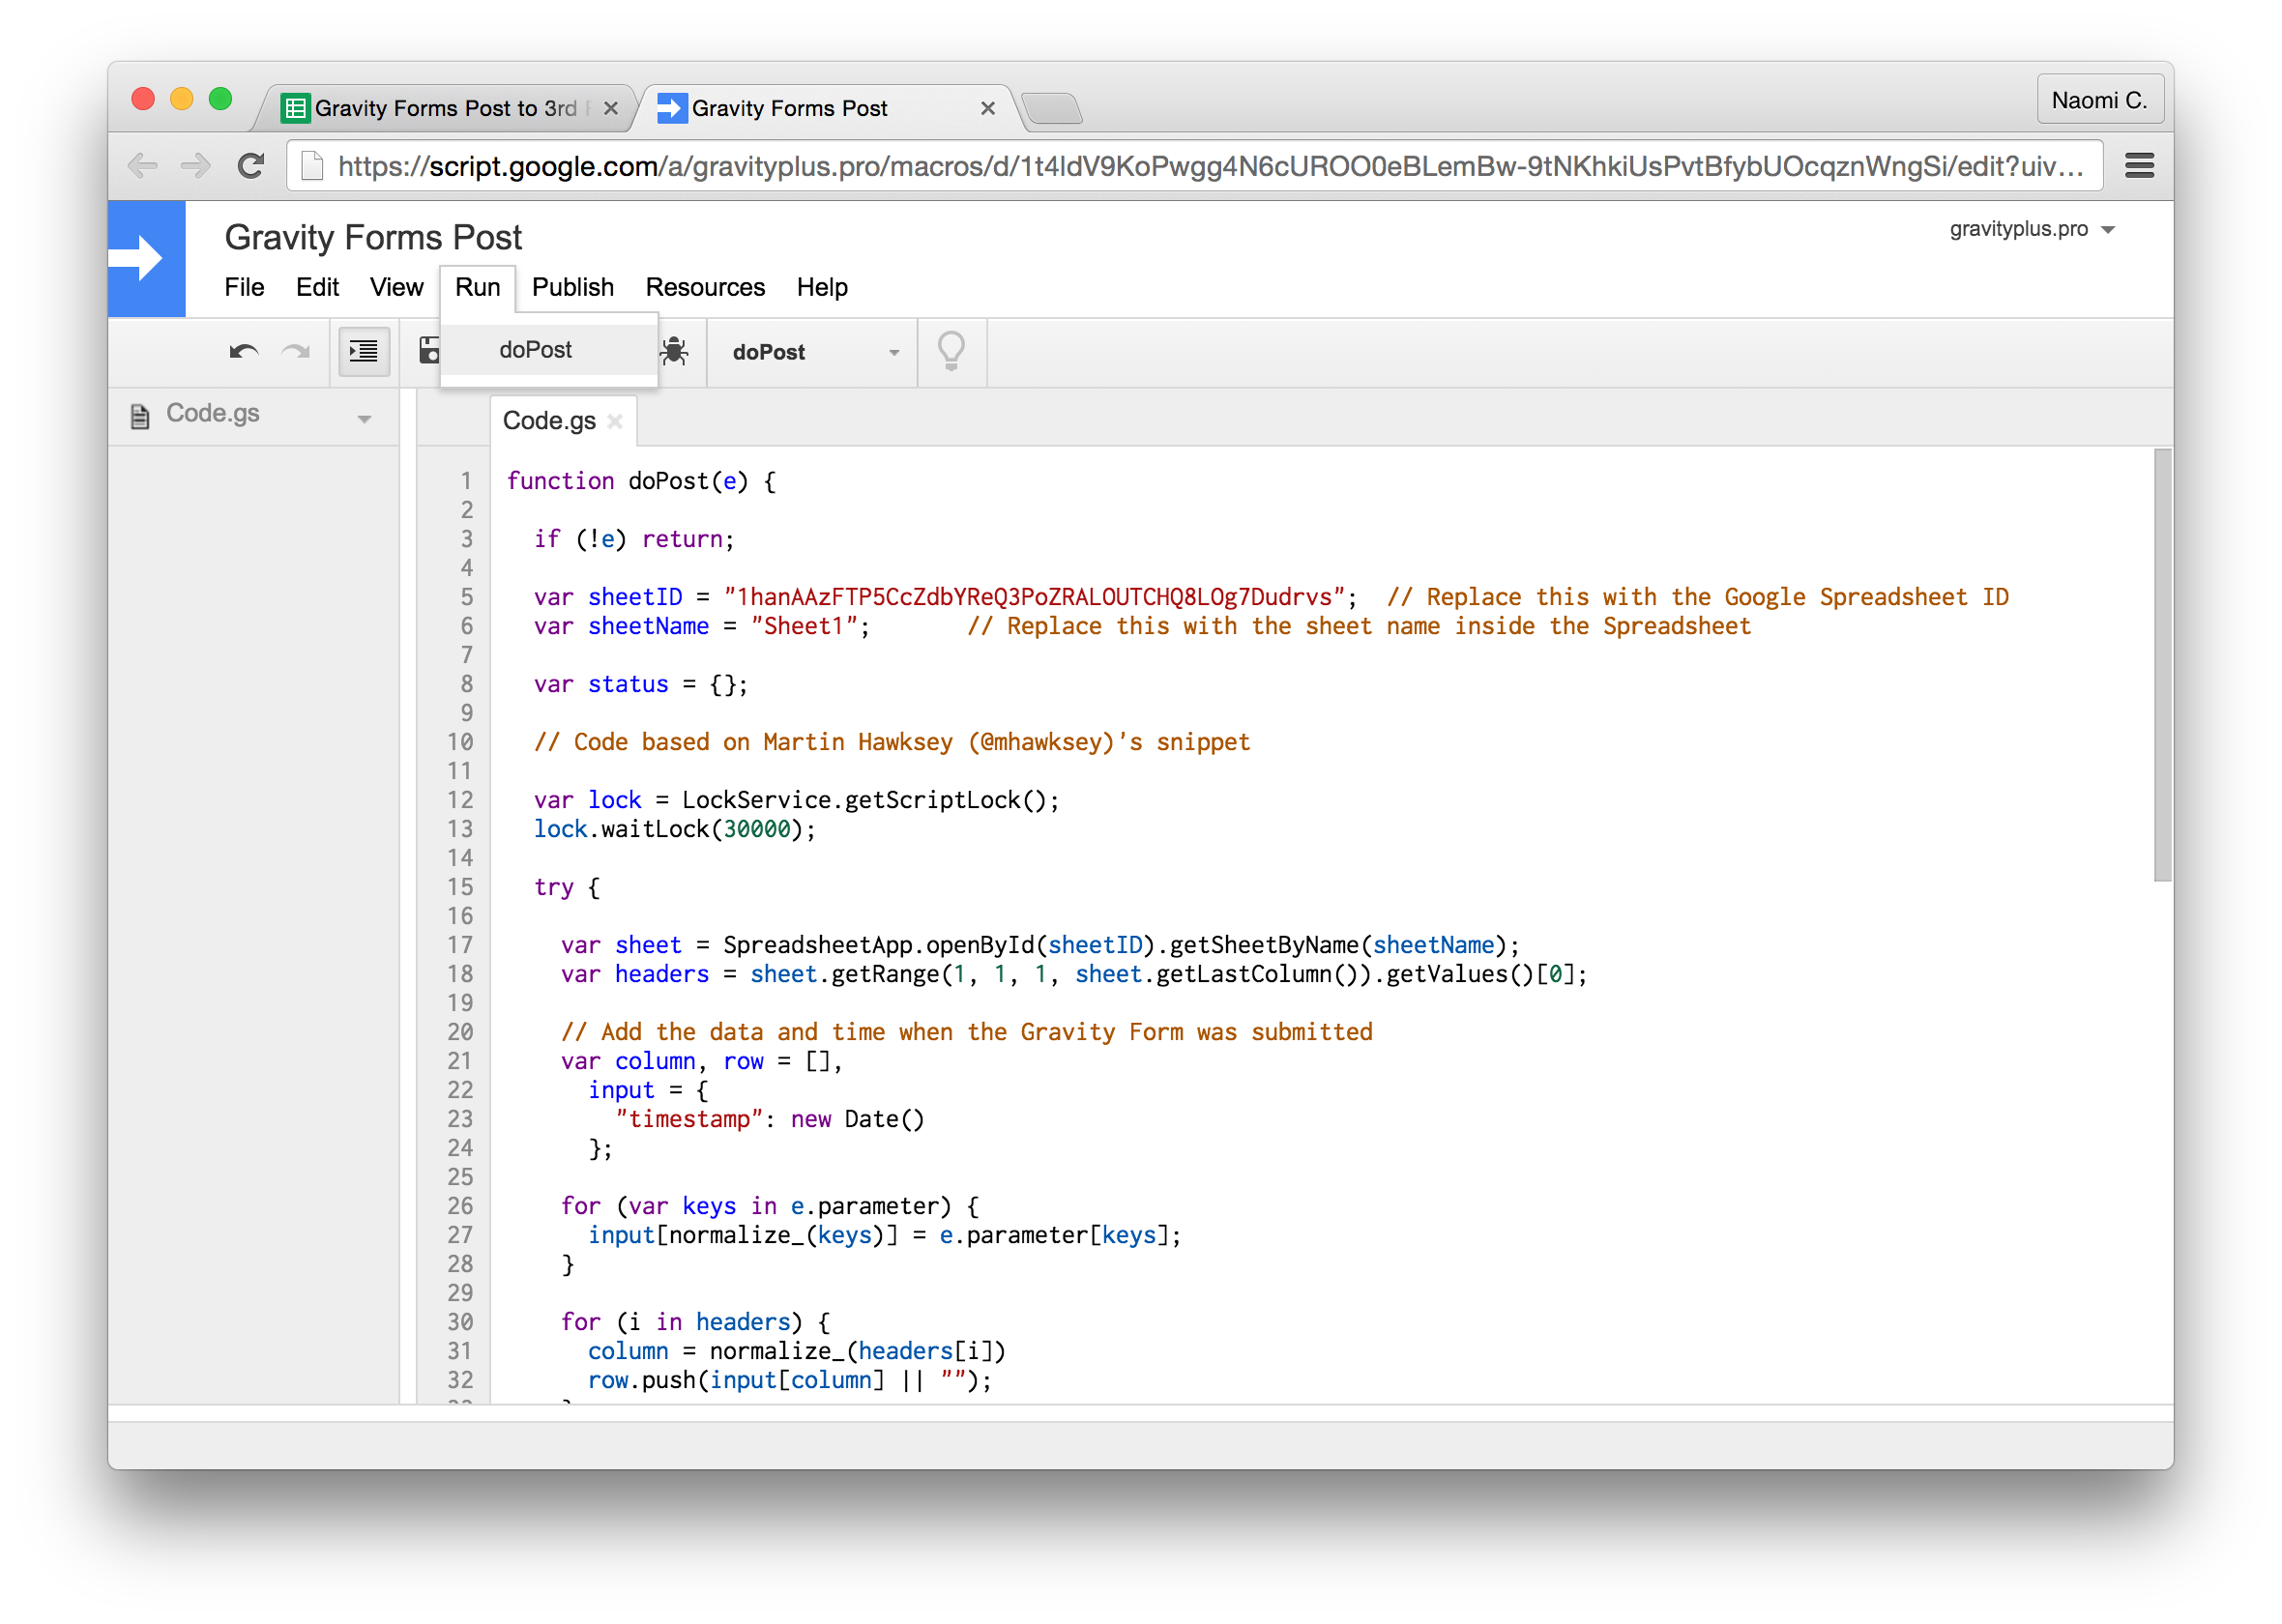 Gravity Forms to Google Sheets run google script function